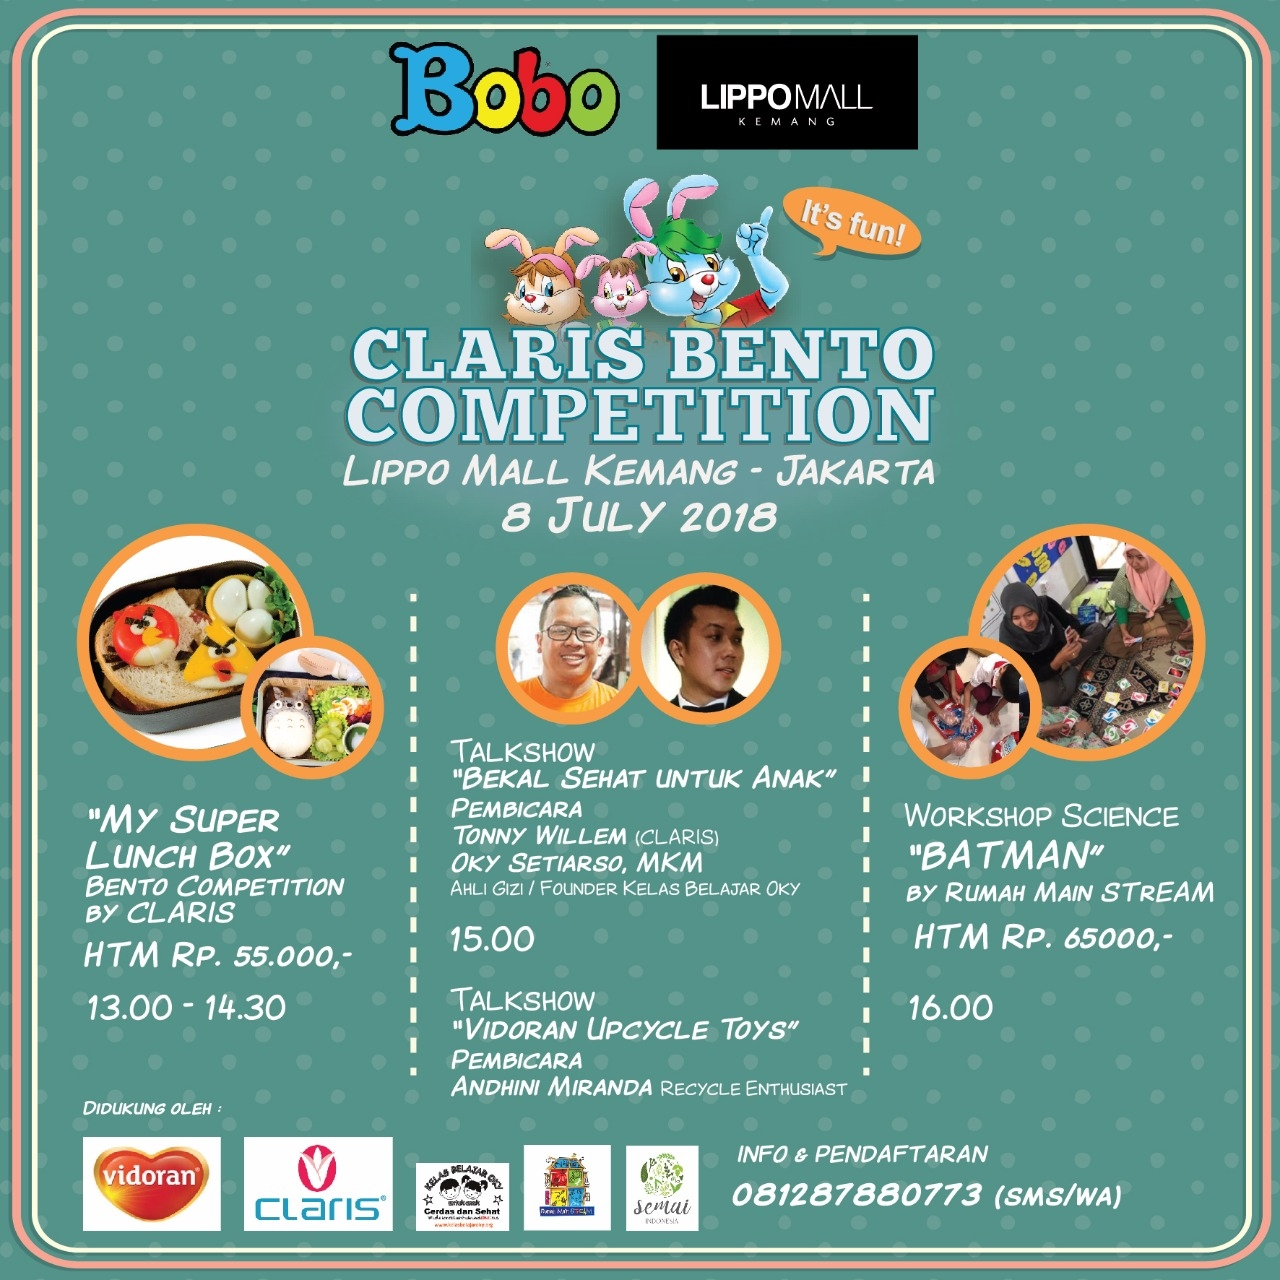 CLARIS BENTO COMPETITION